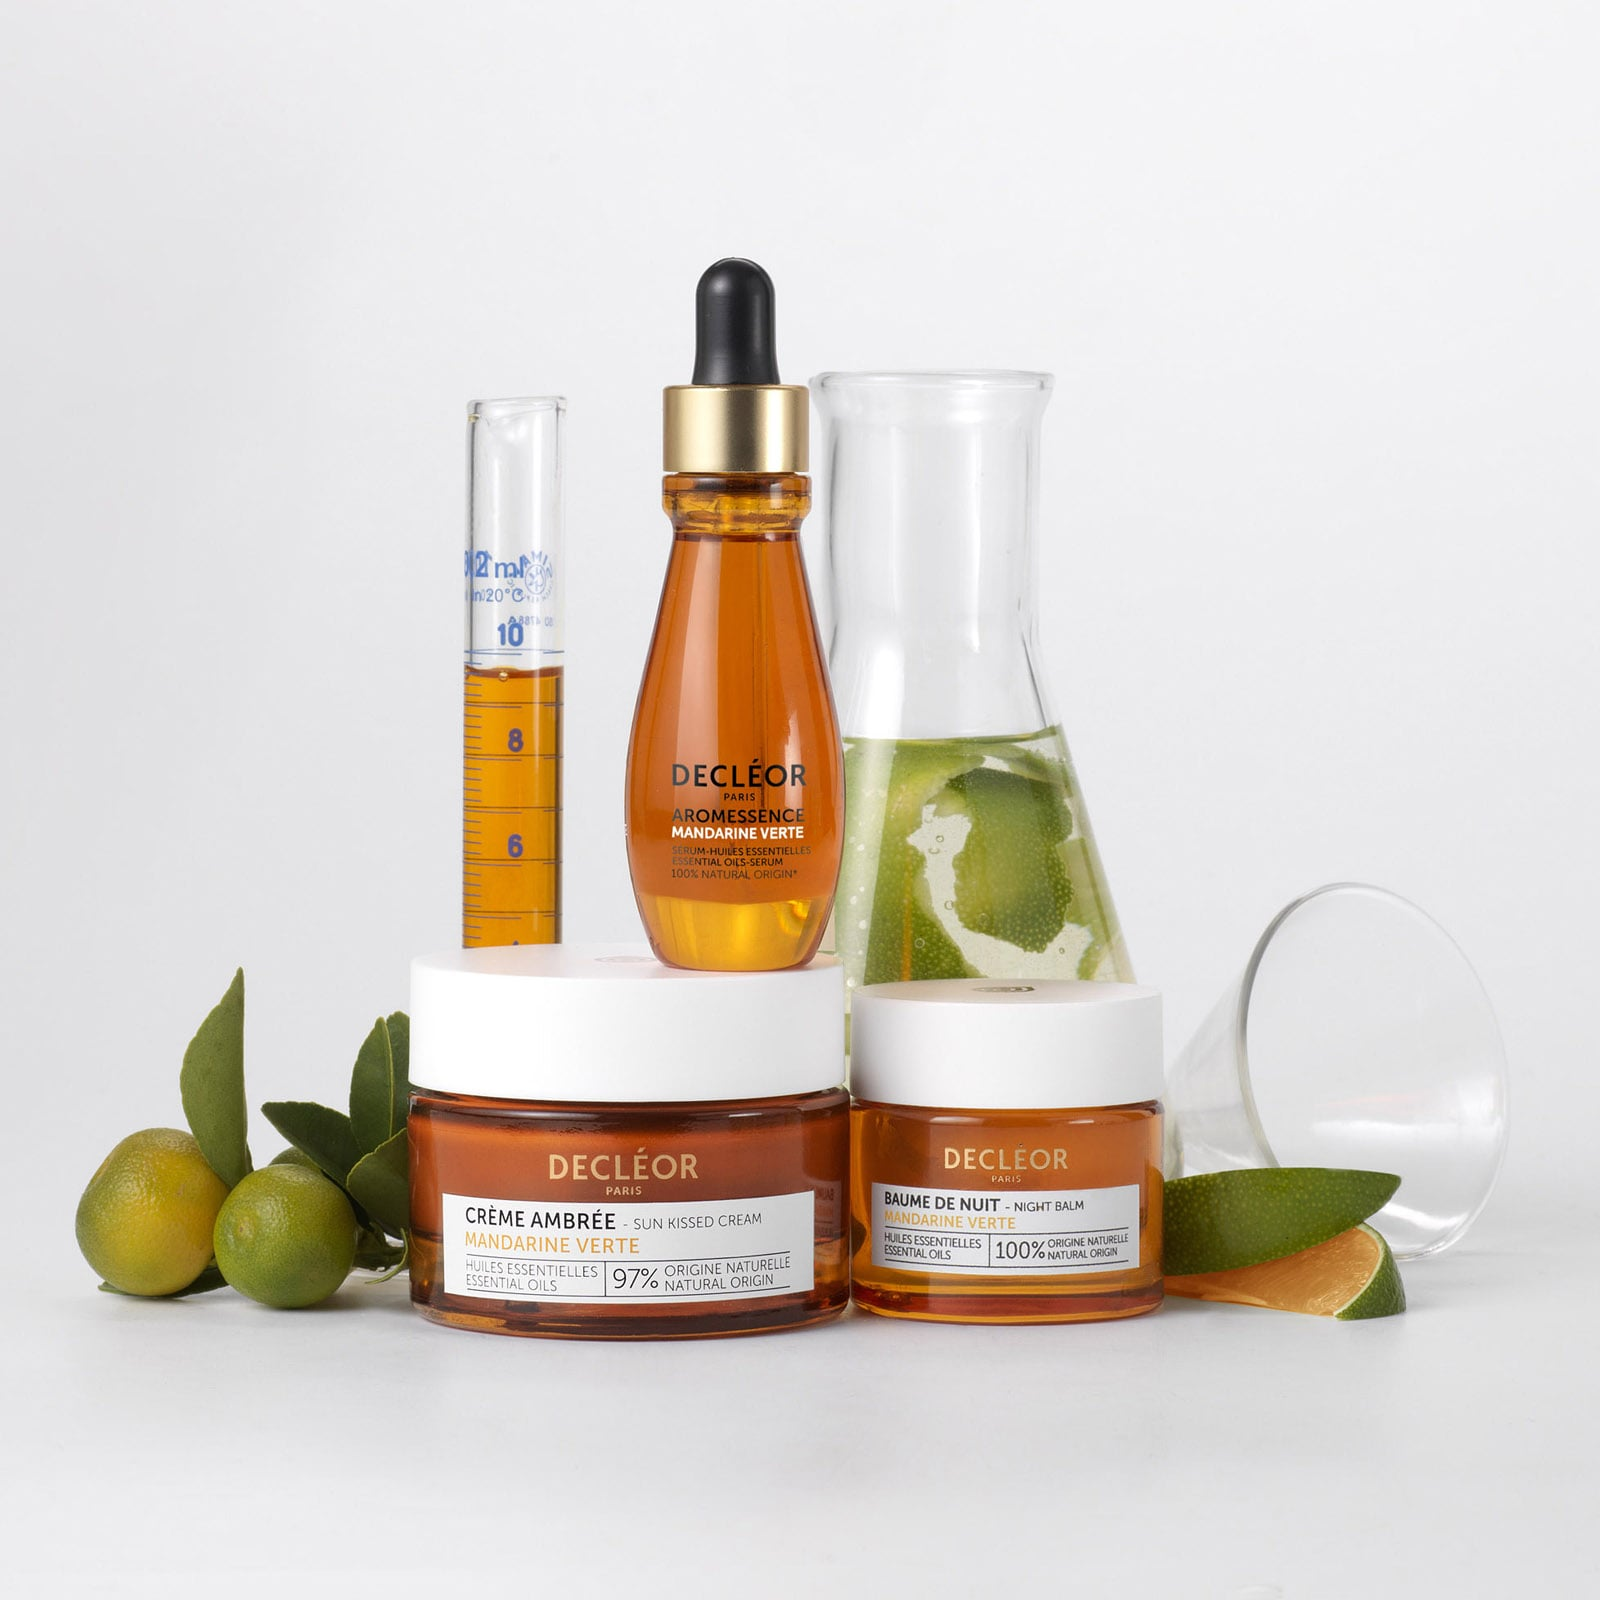 Decleor products image 1